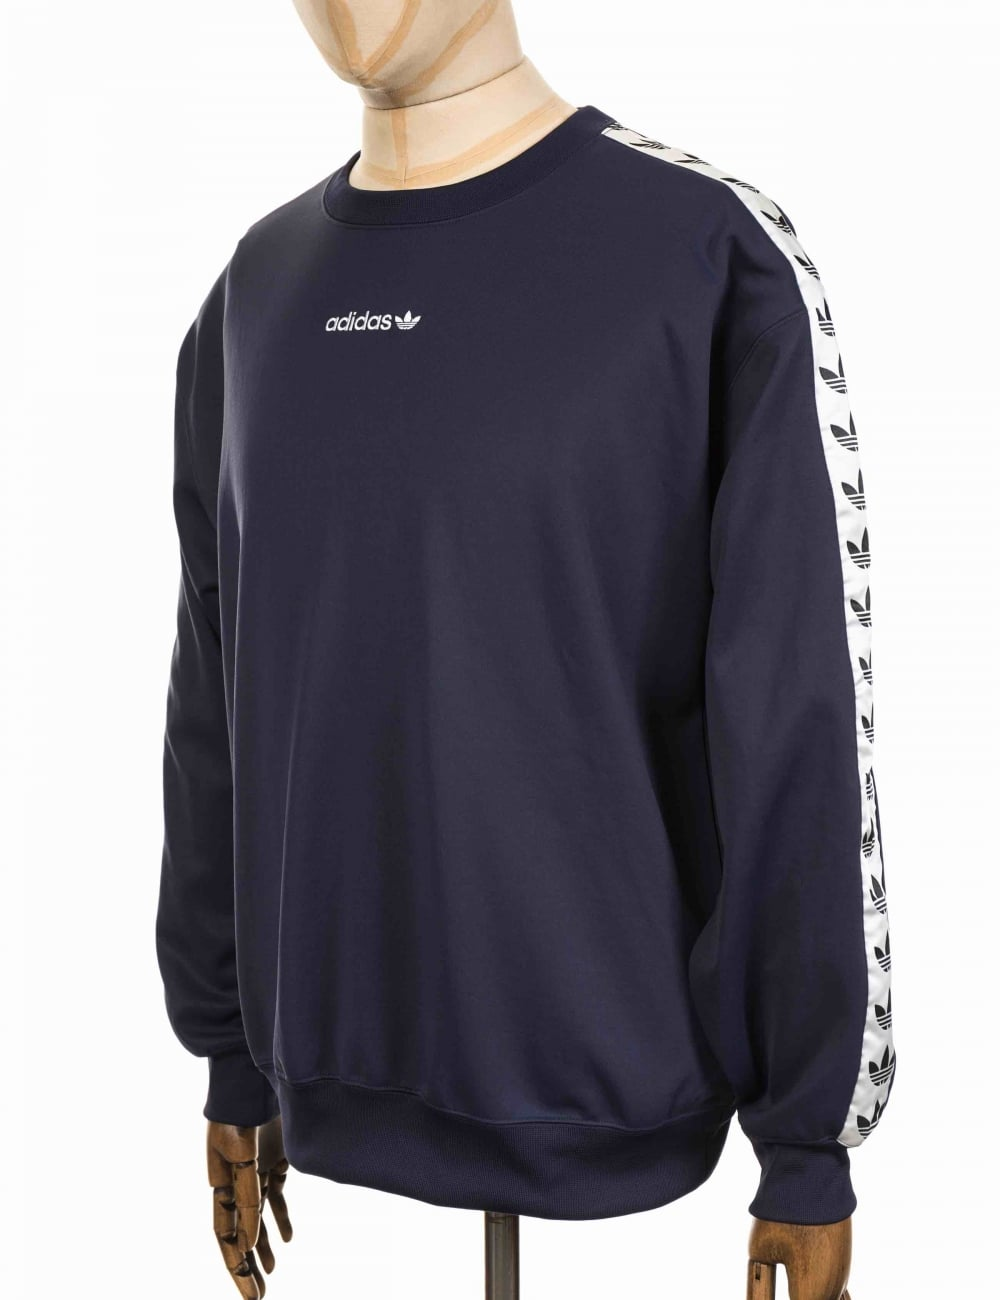 Continente Instituto Equipar  Adidas Originals TNT Tape Crew Sweatshirt - Trace Blue/White - Clothing  from Fat Buddha Store UK